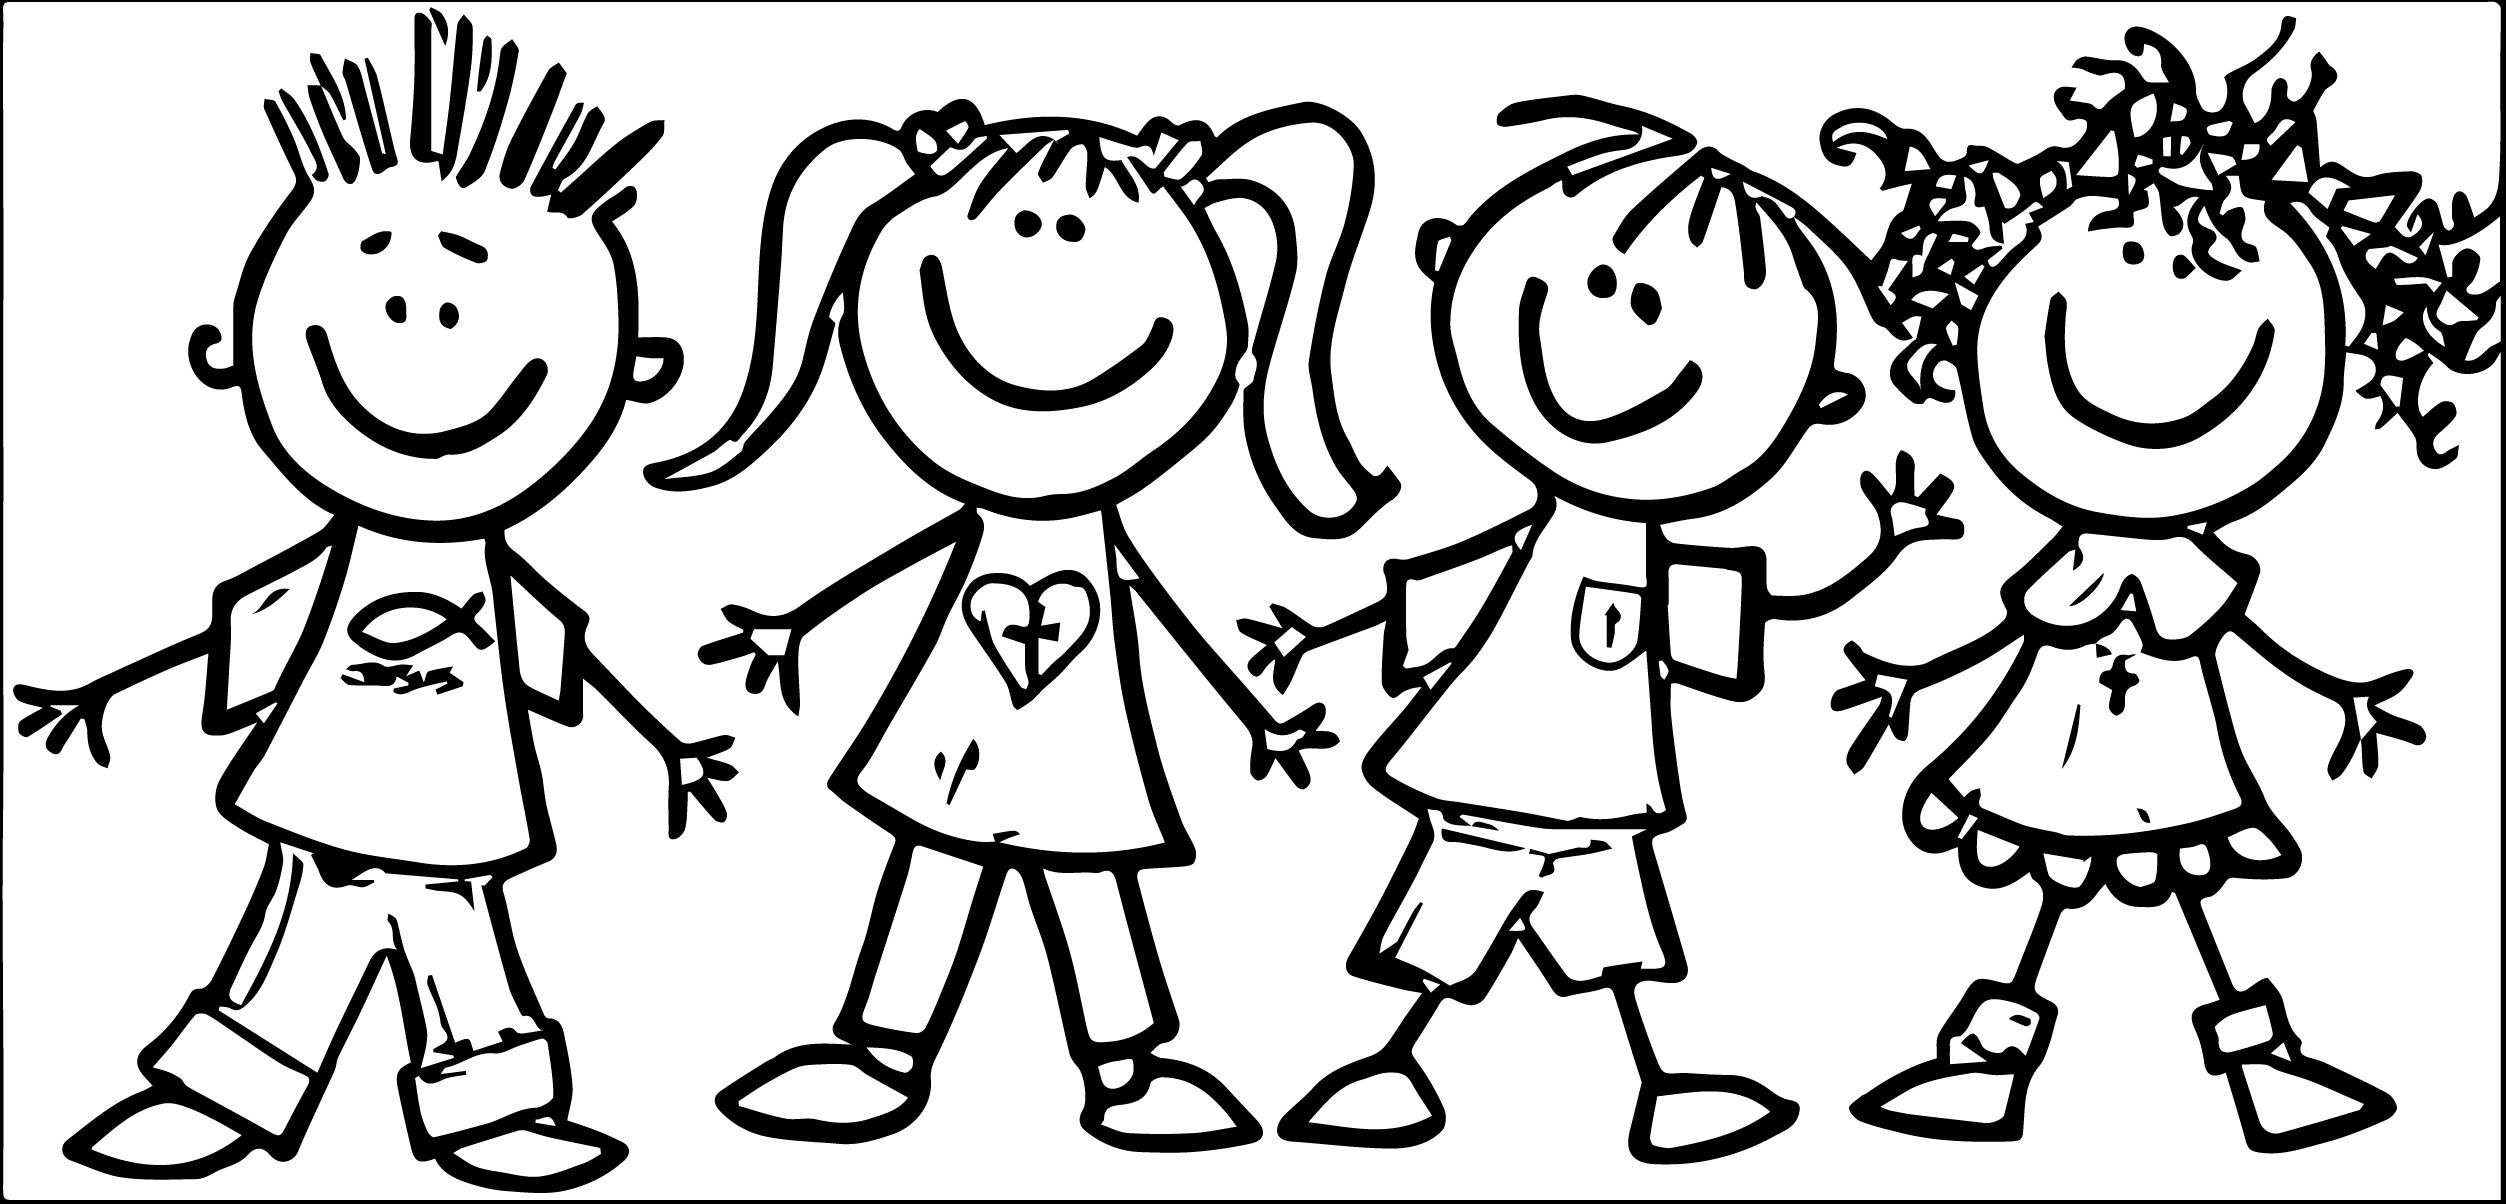 Braces clipart black and white. Kids drawing at getdrawings